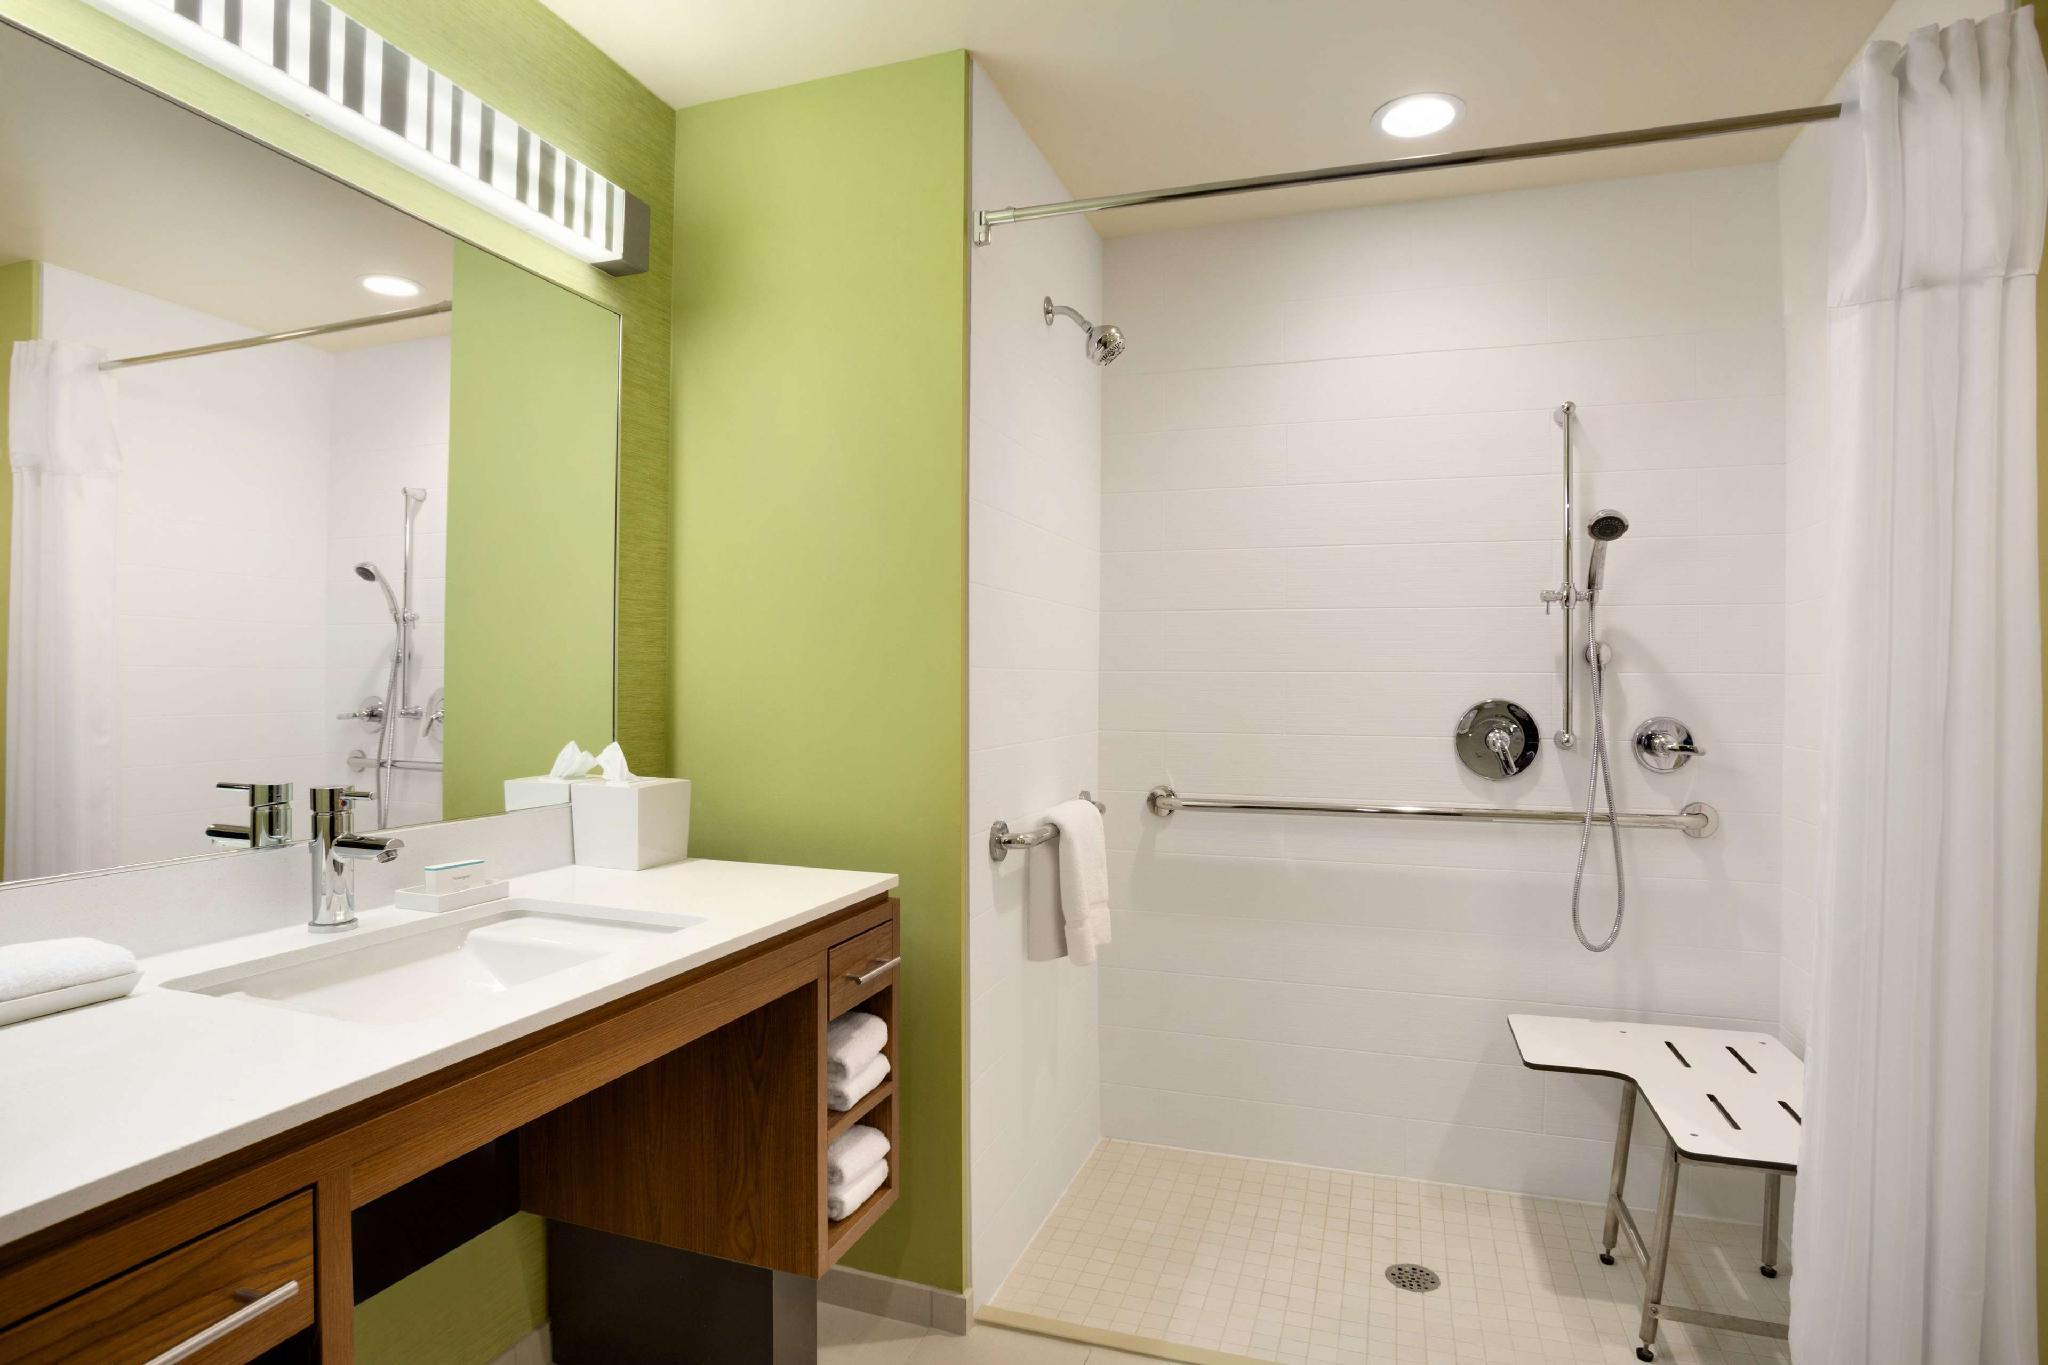 1 King Accessible Roll In Shower Studio Non-Smoking